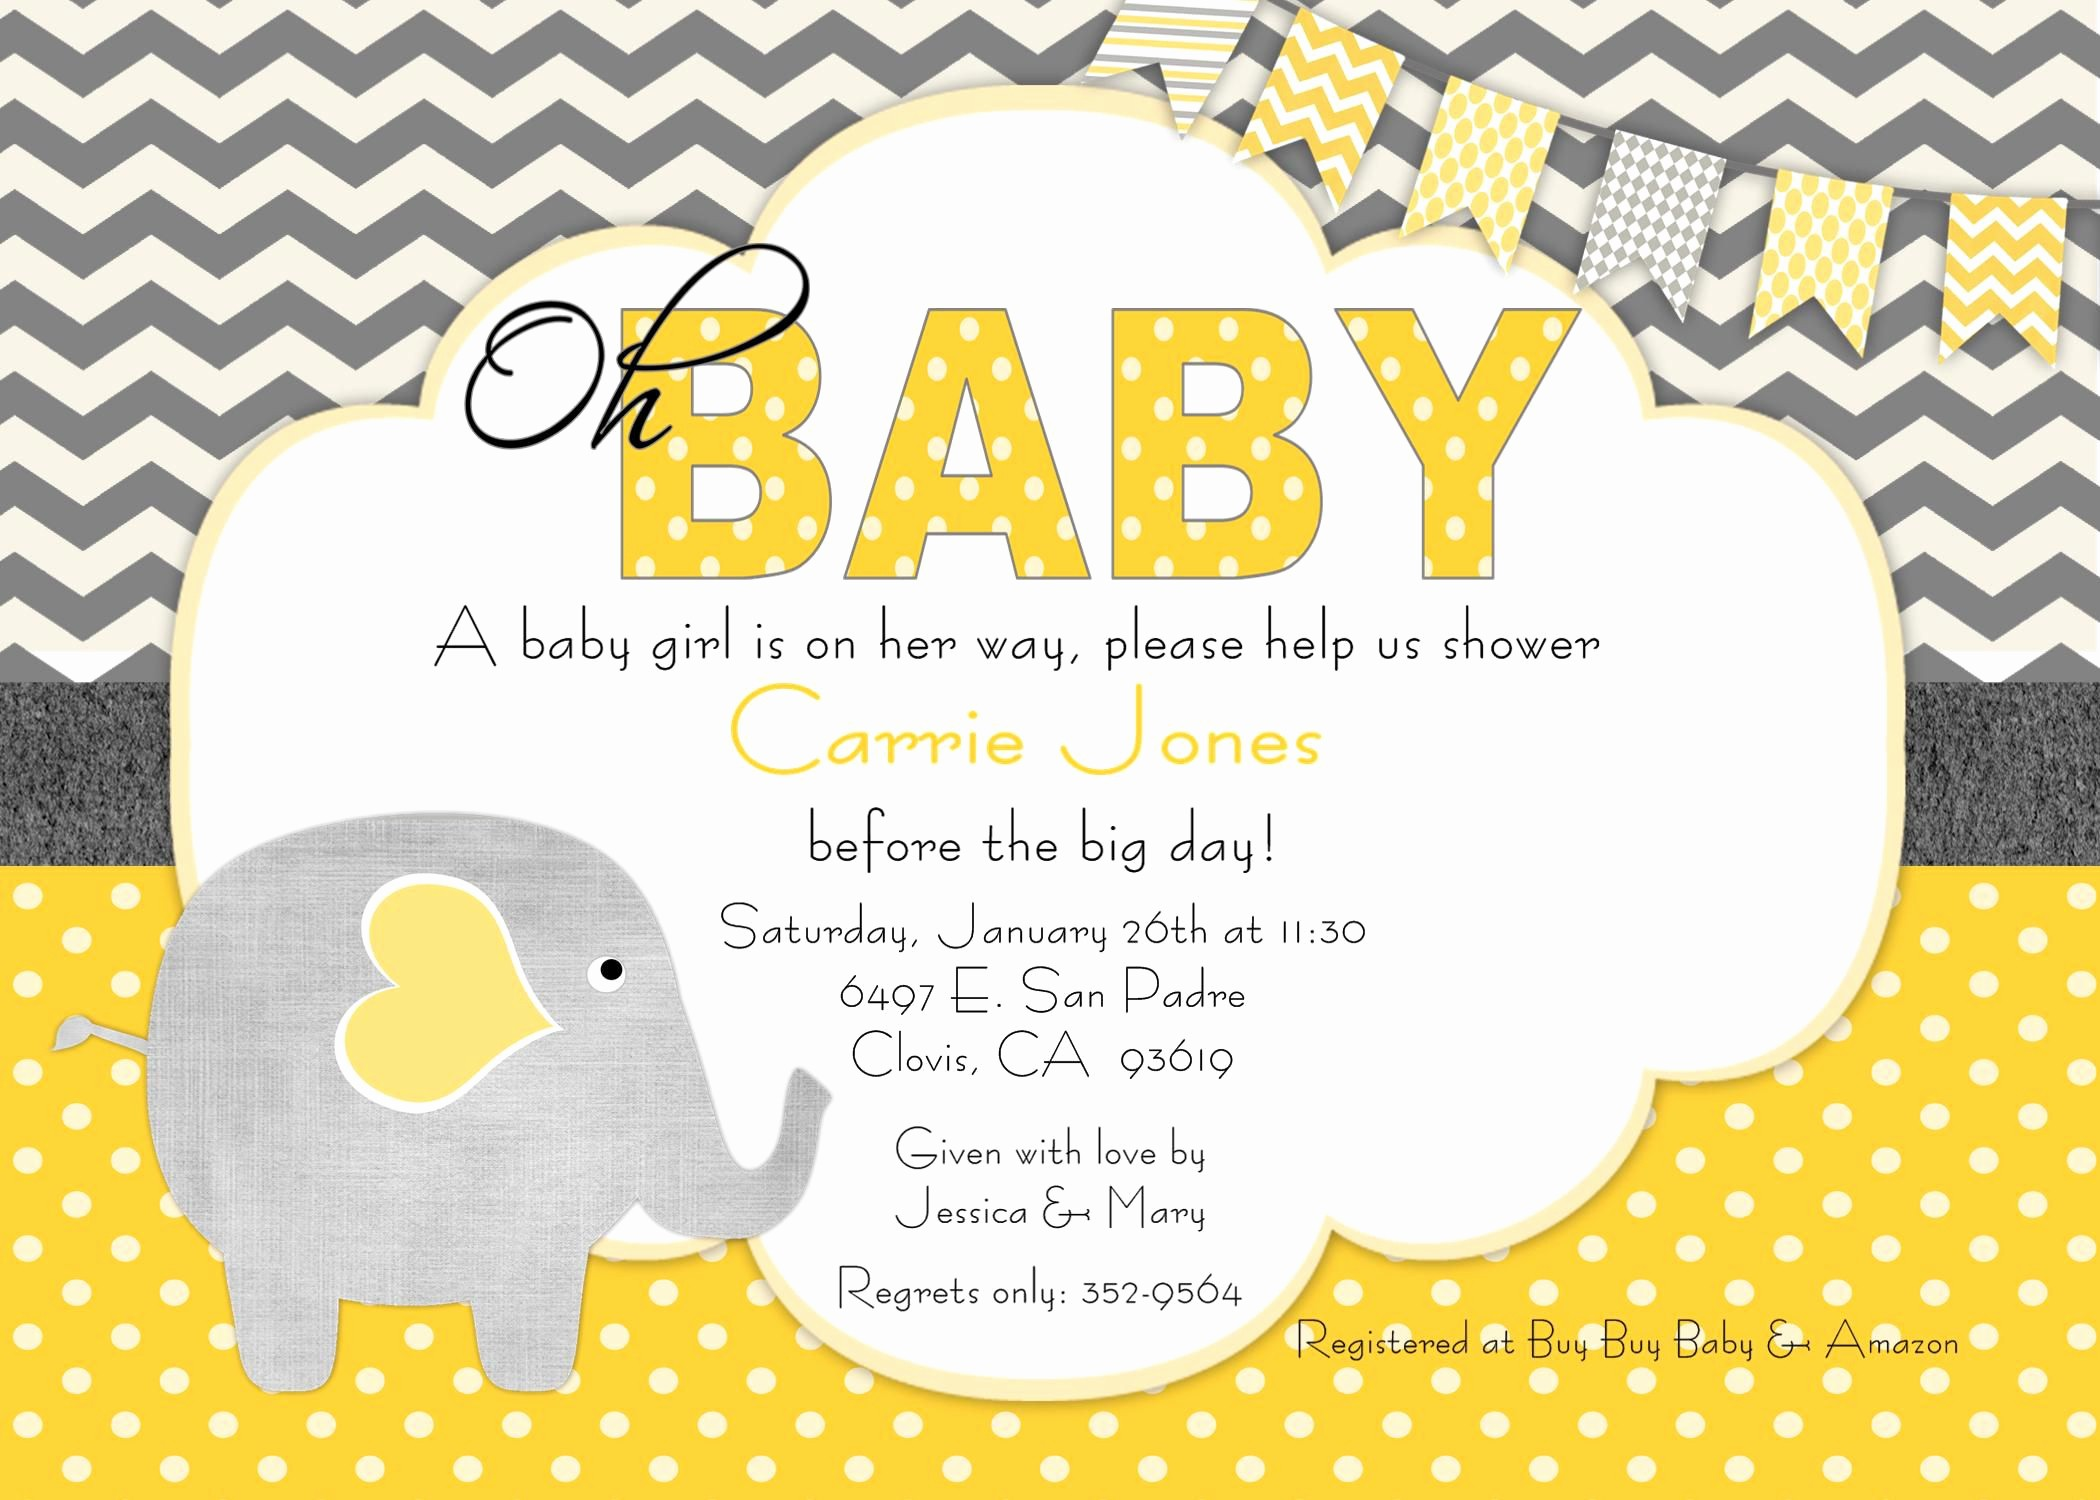 Baby Shower Invitation List Template New Baby Shower Invitation Free Baby Shower Invitation